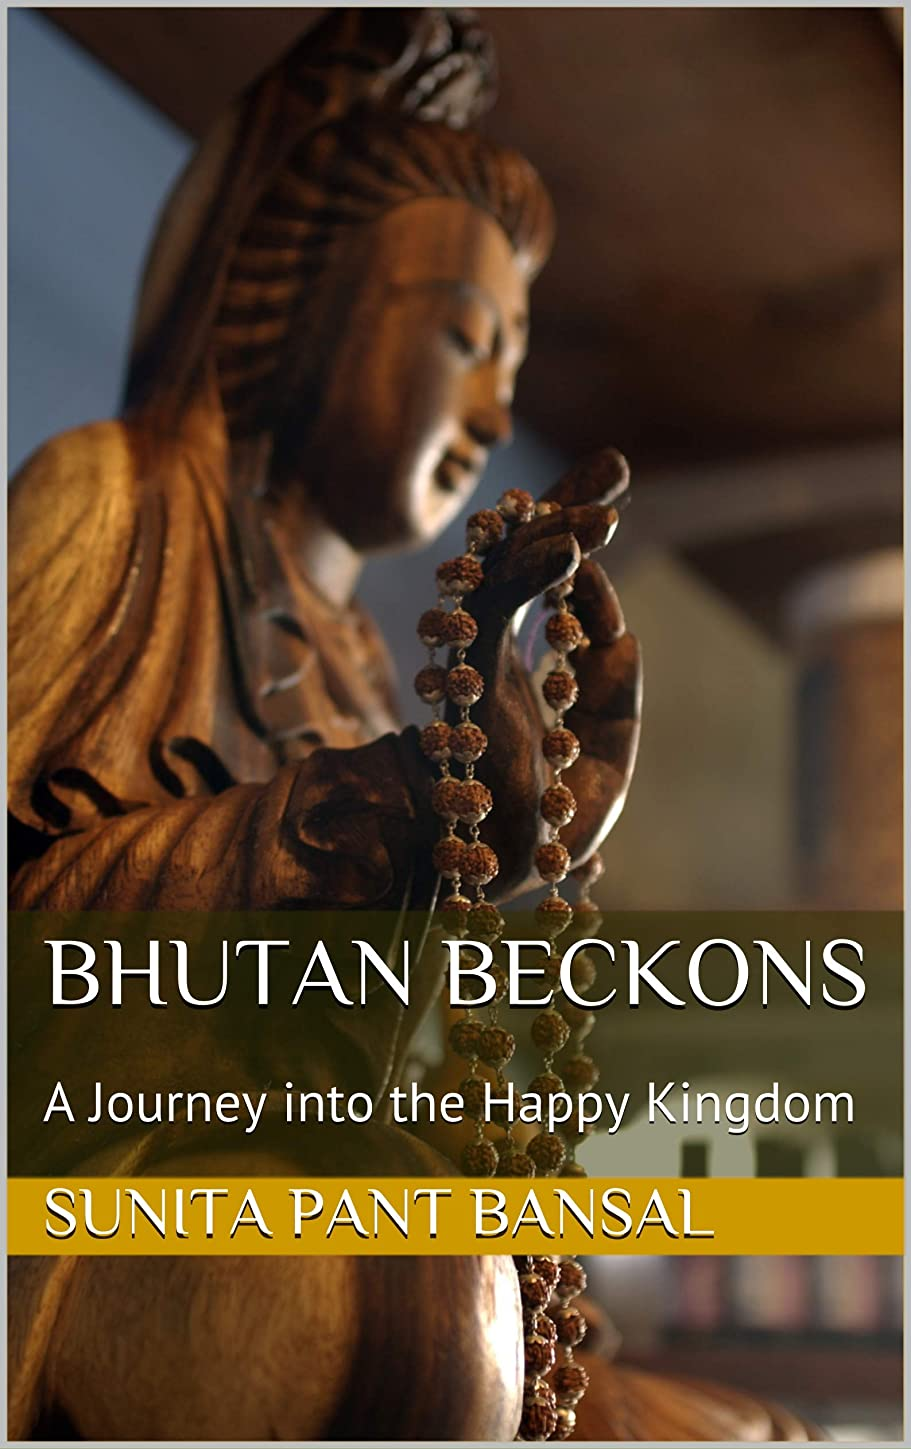 戻す団結貢献するBhutan Beckons: A Journey into the Happy Kingdom (English Edition)